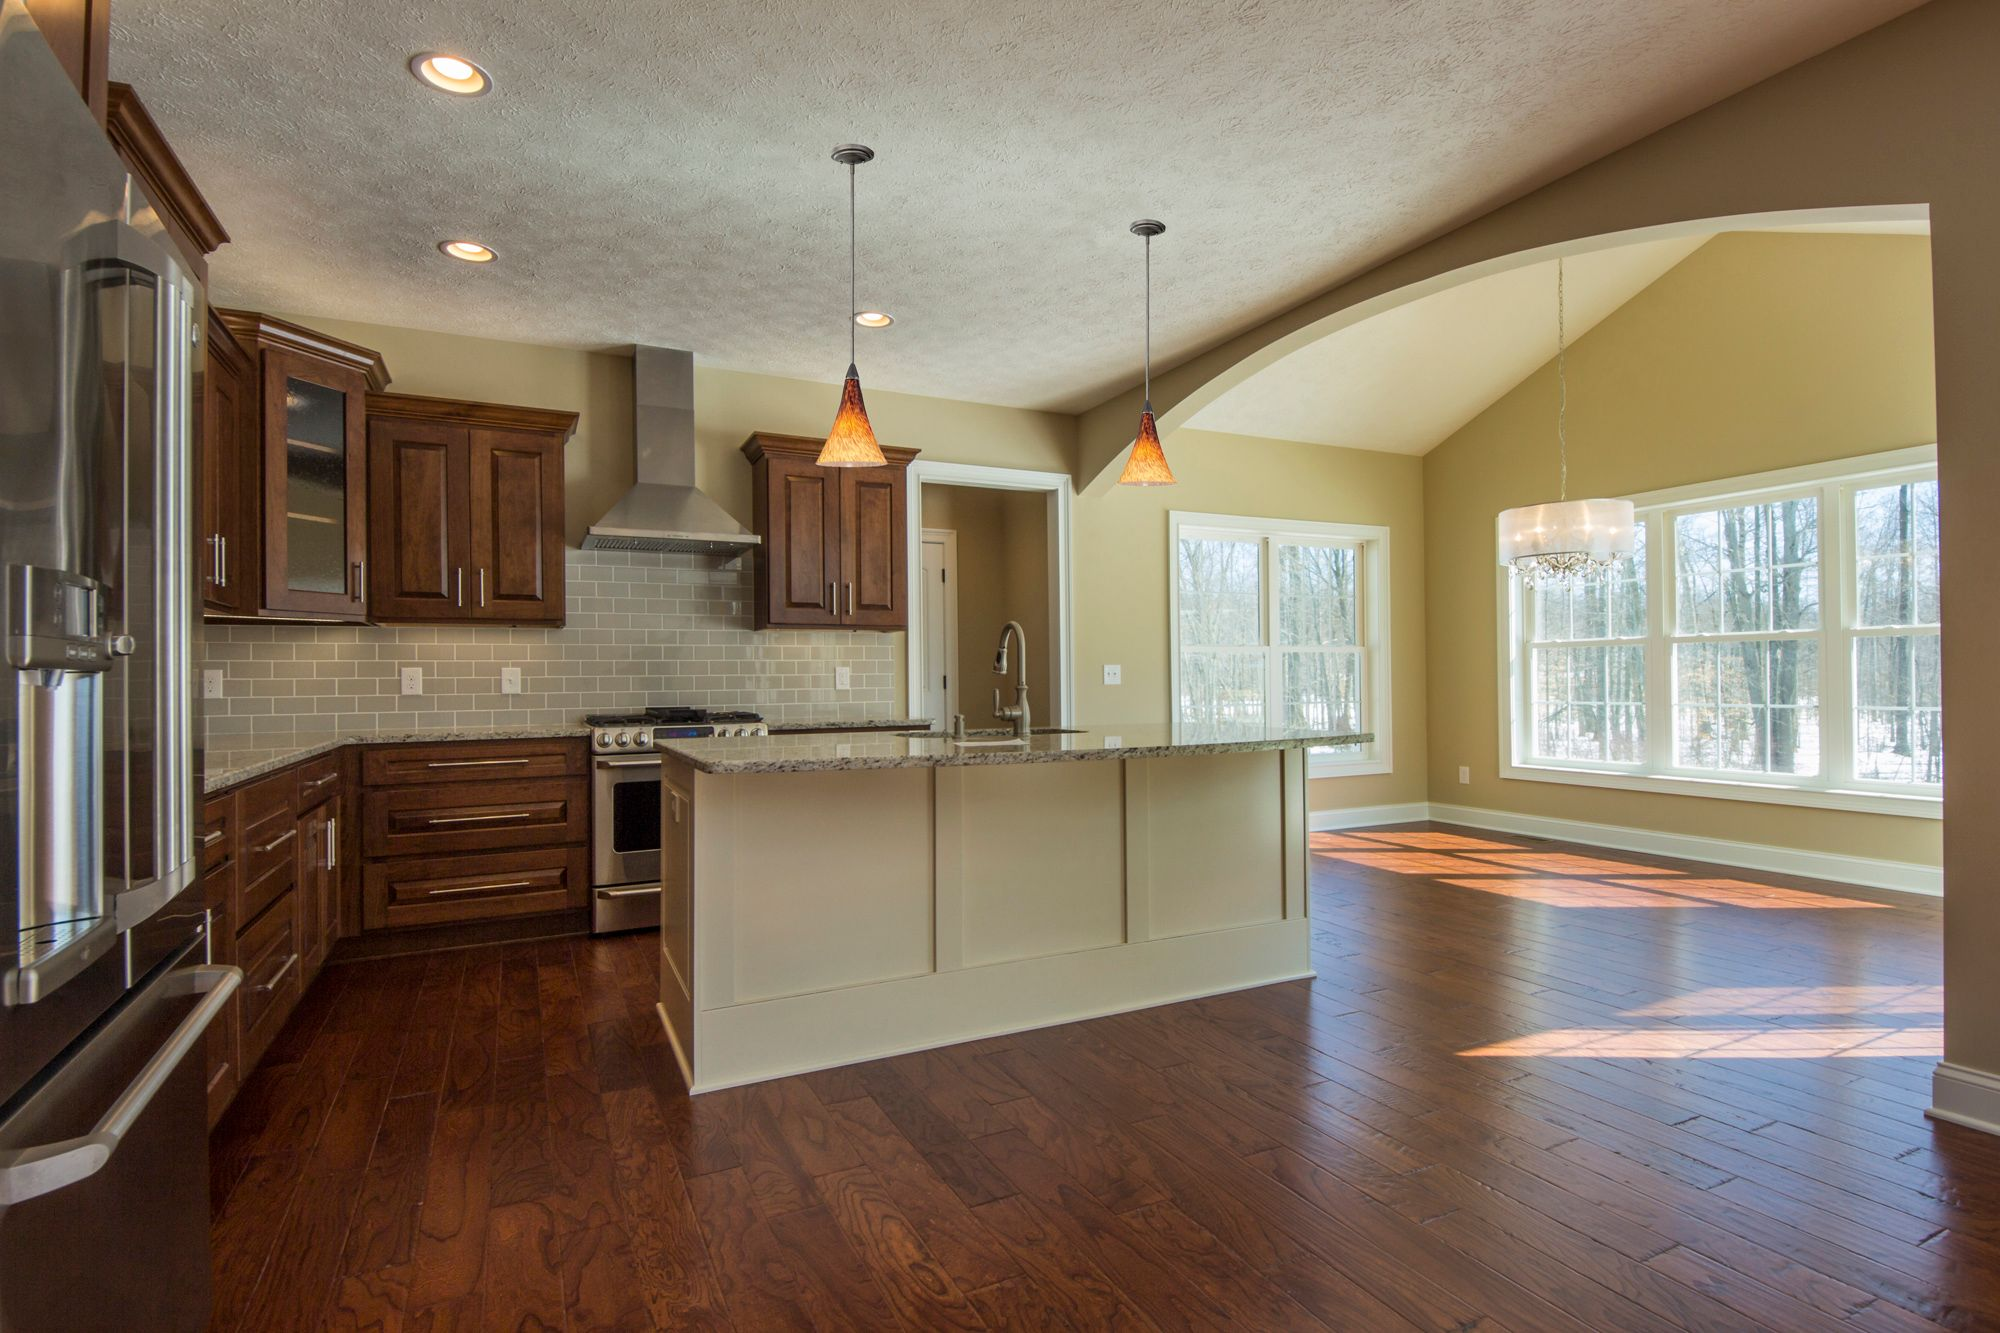 Kitchen featured in the Caldwell C1 By Classic Homes in Akron, OH